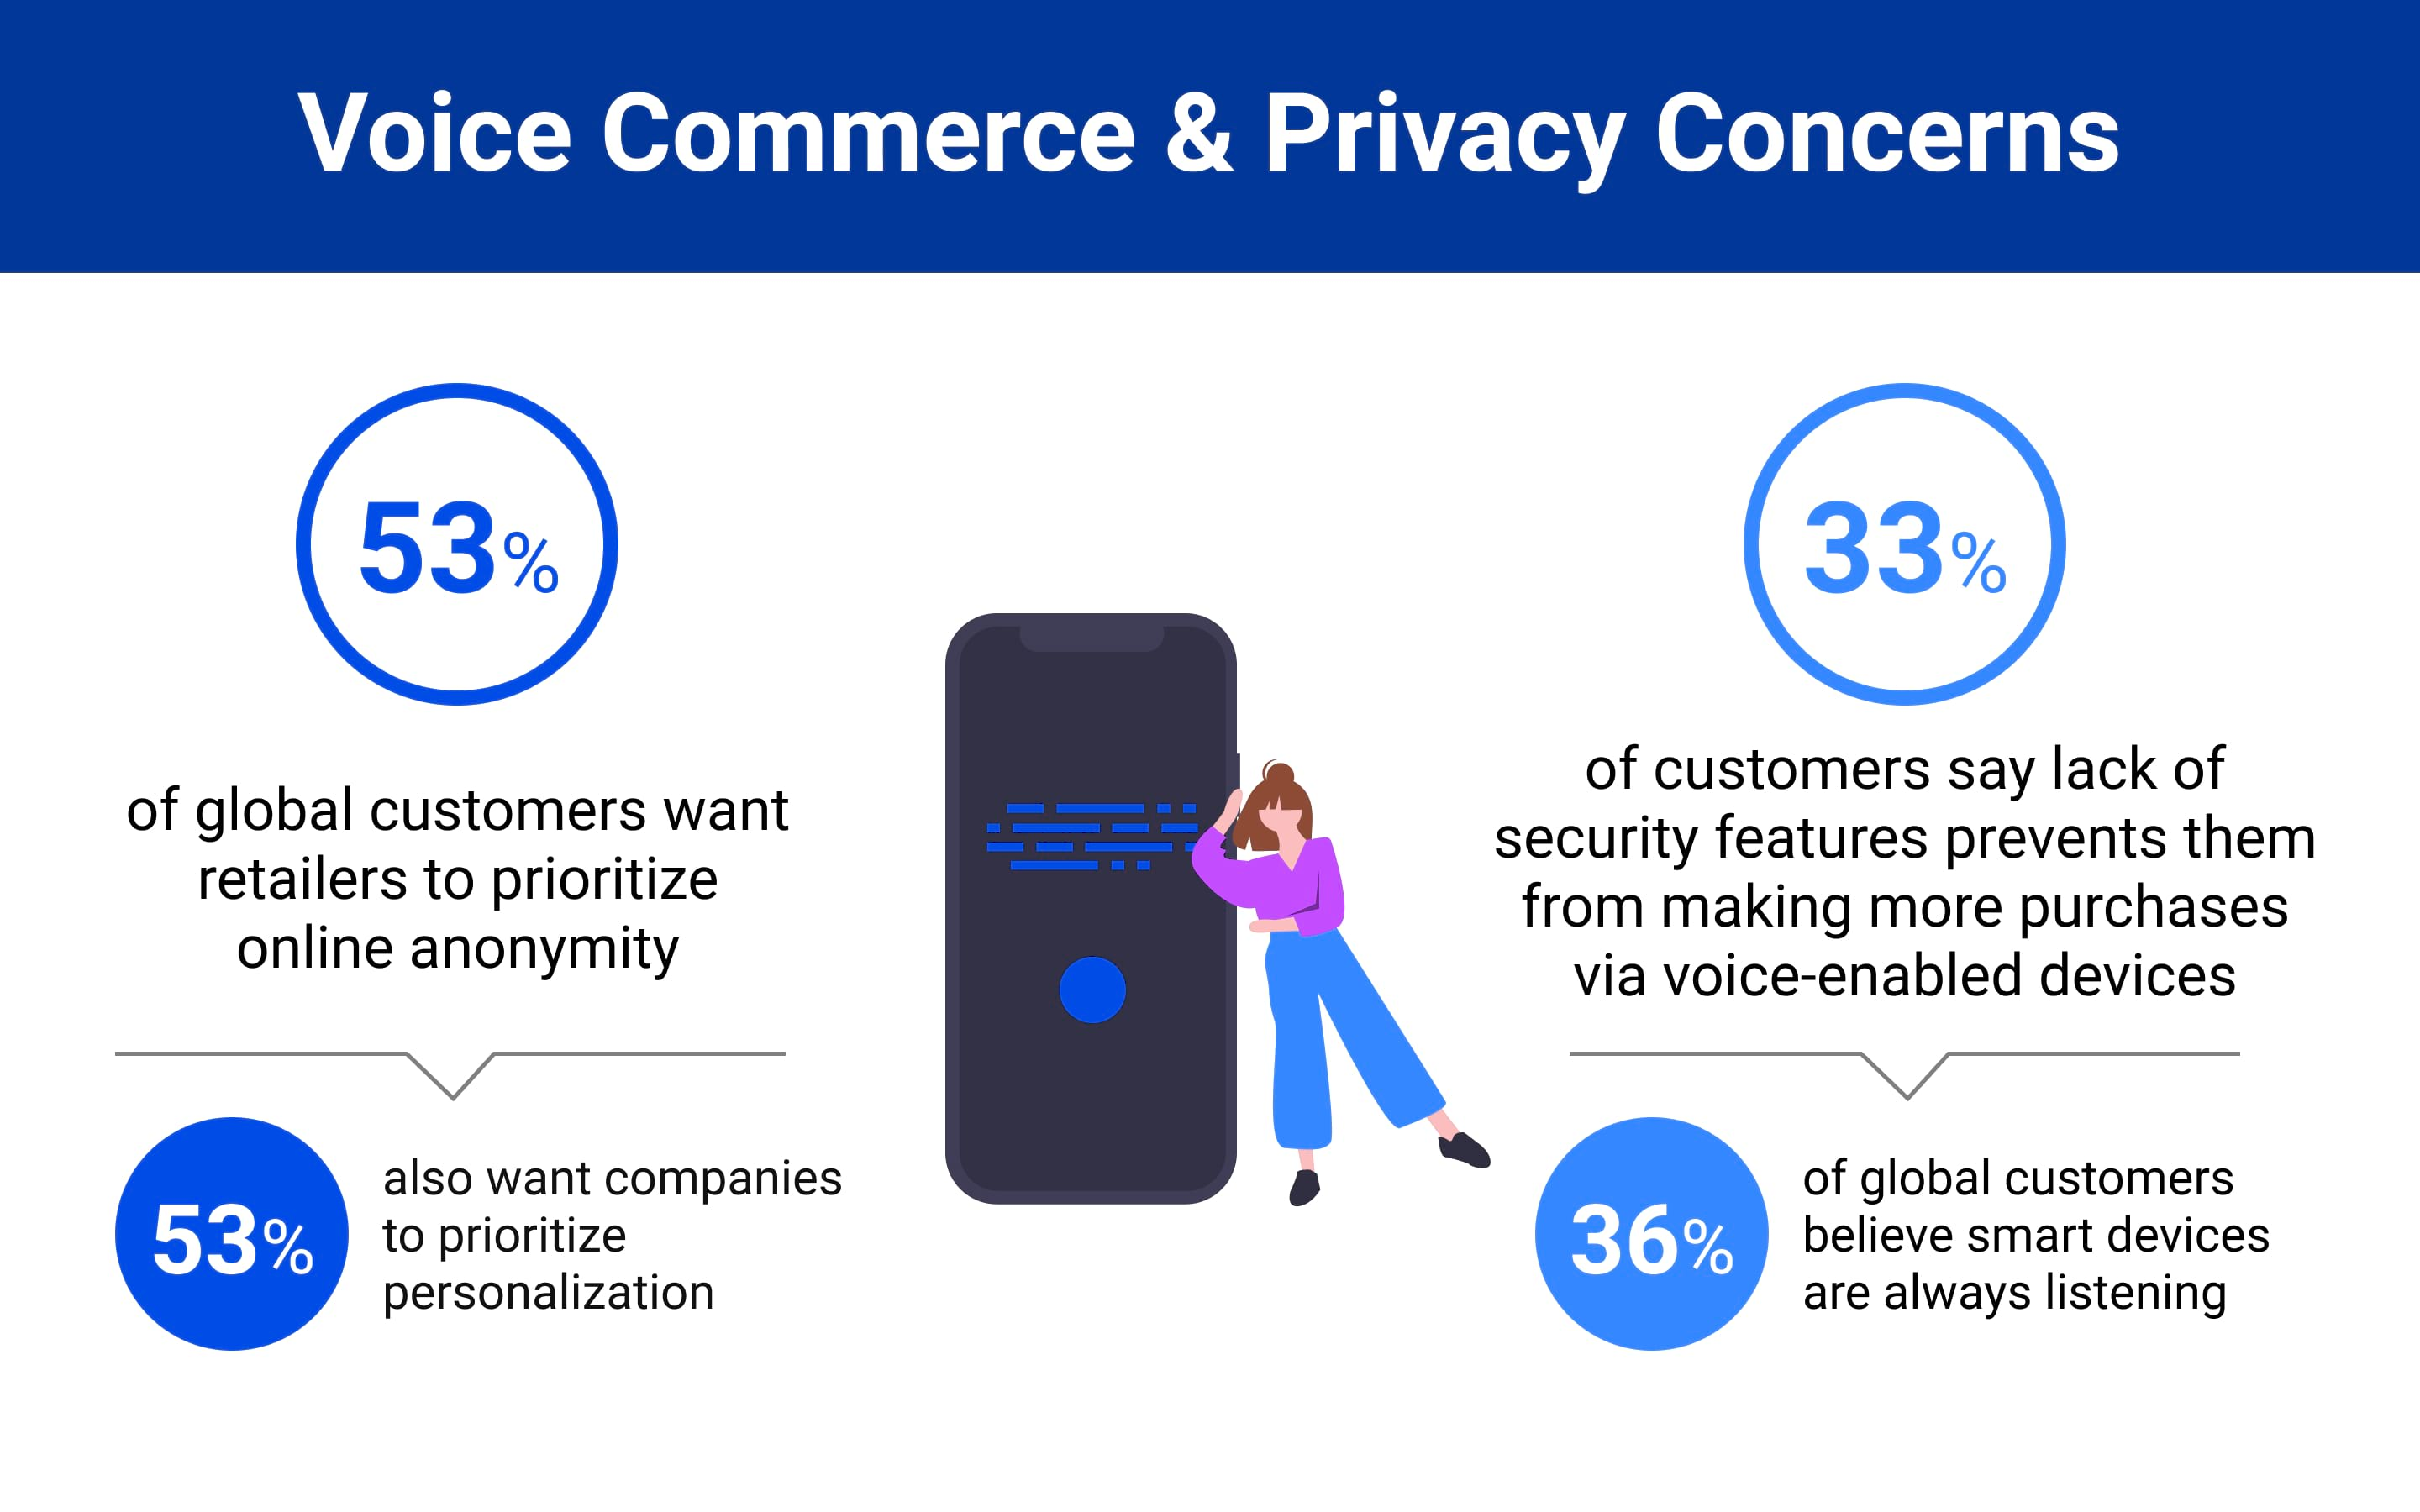 Voice Commerce and Privacy Concerns